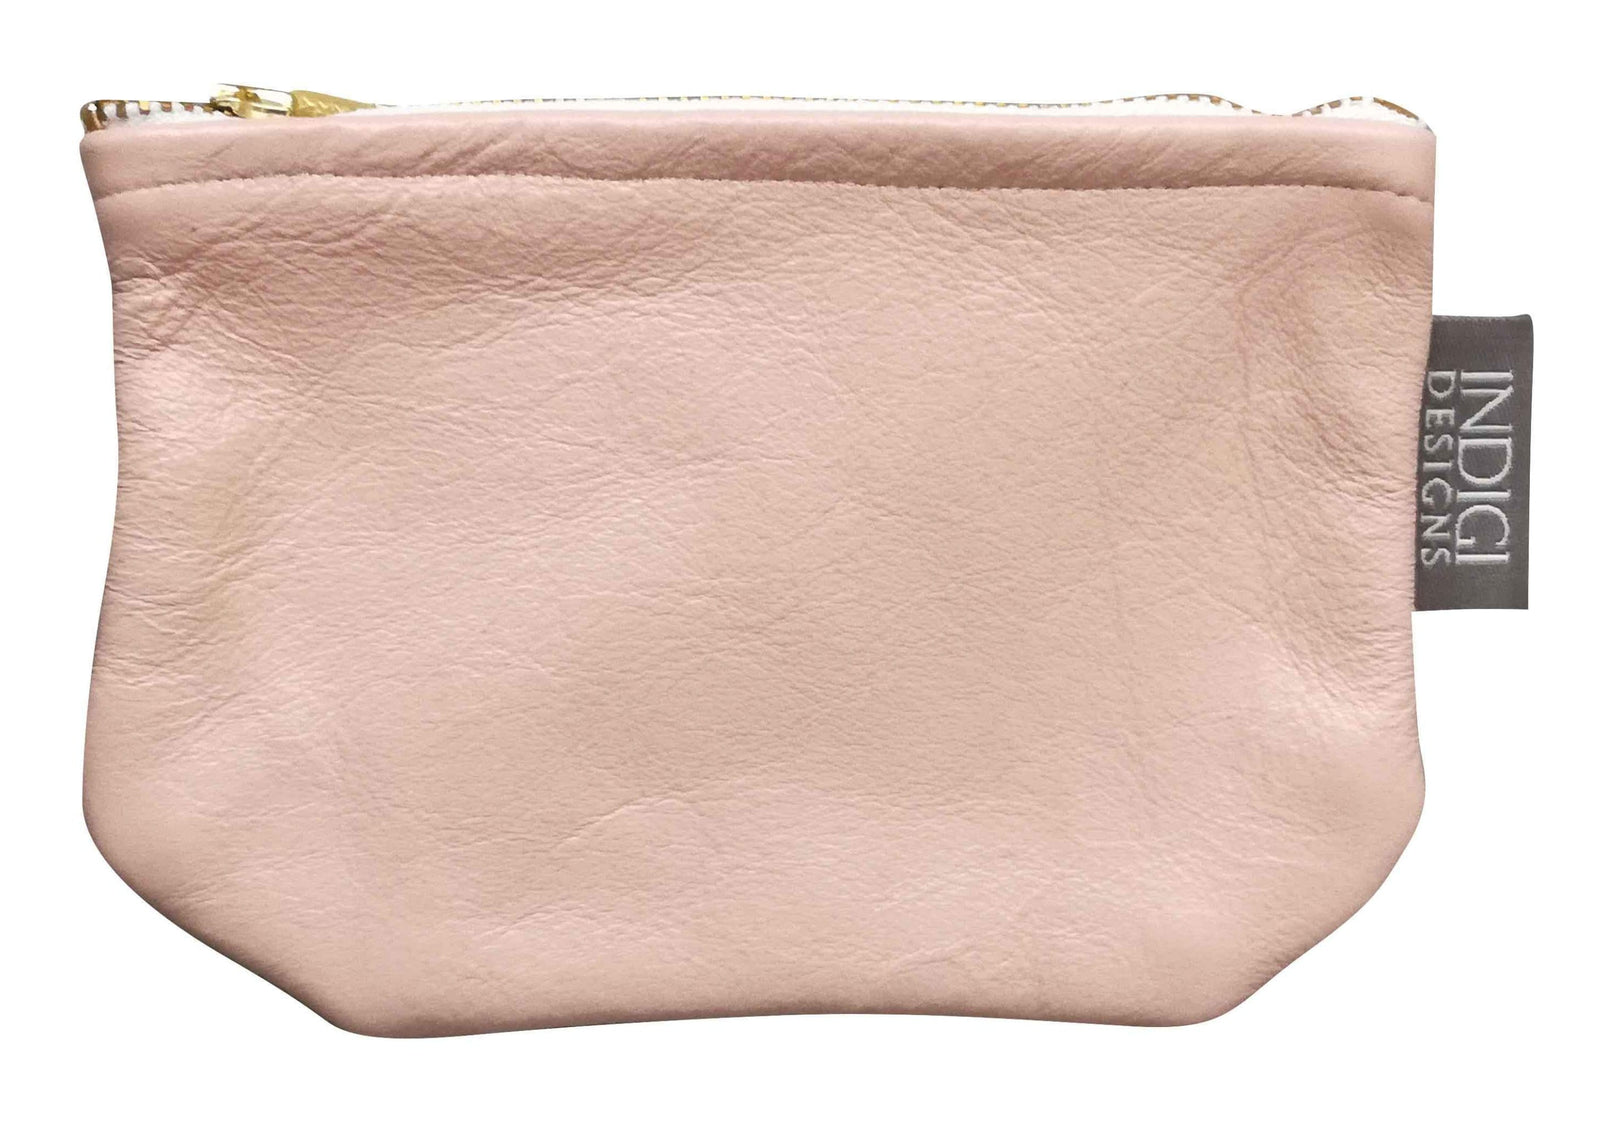 Nude Pink Leather Pouch Small